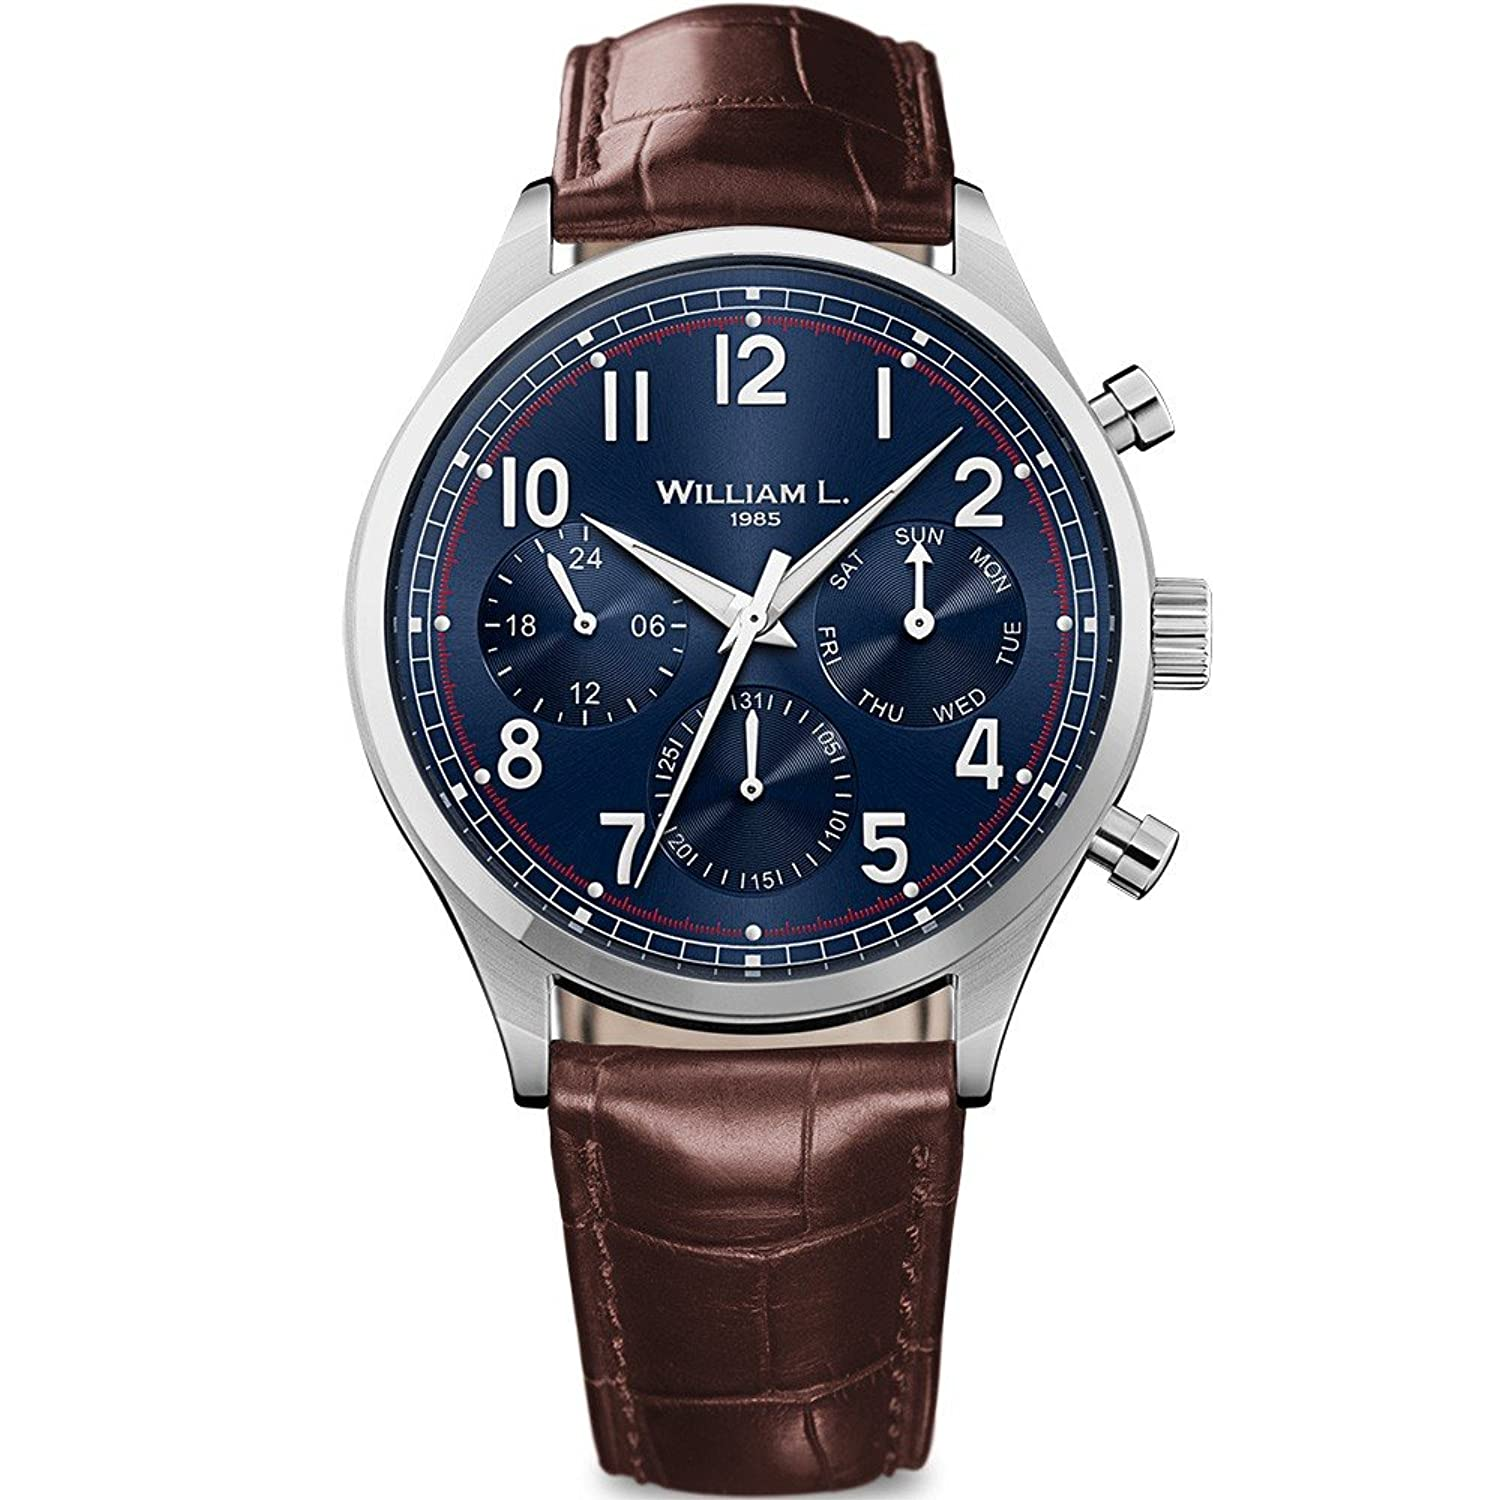 William L. Mens-Armbanduhr WLAC03BUCM